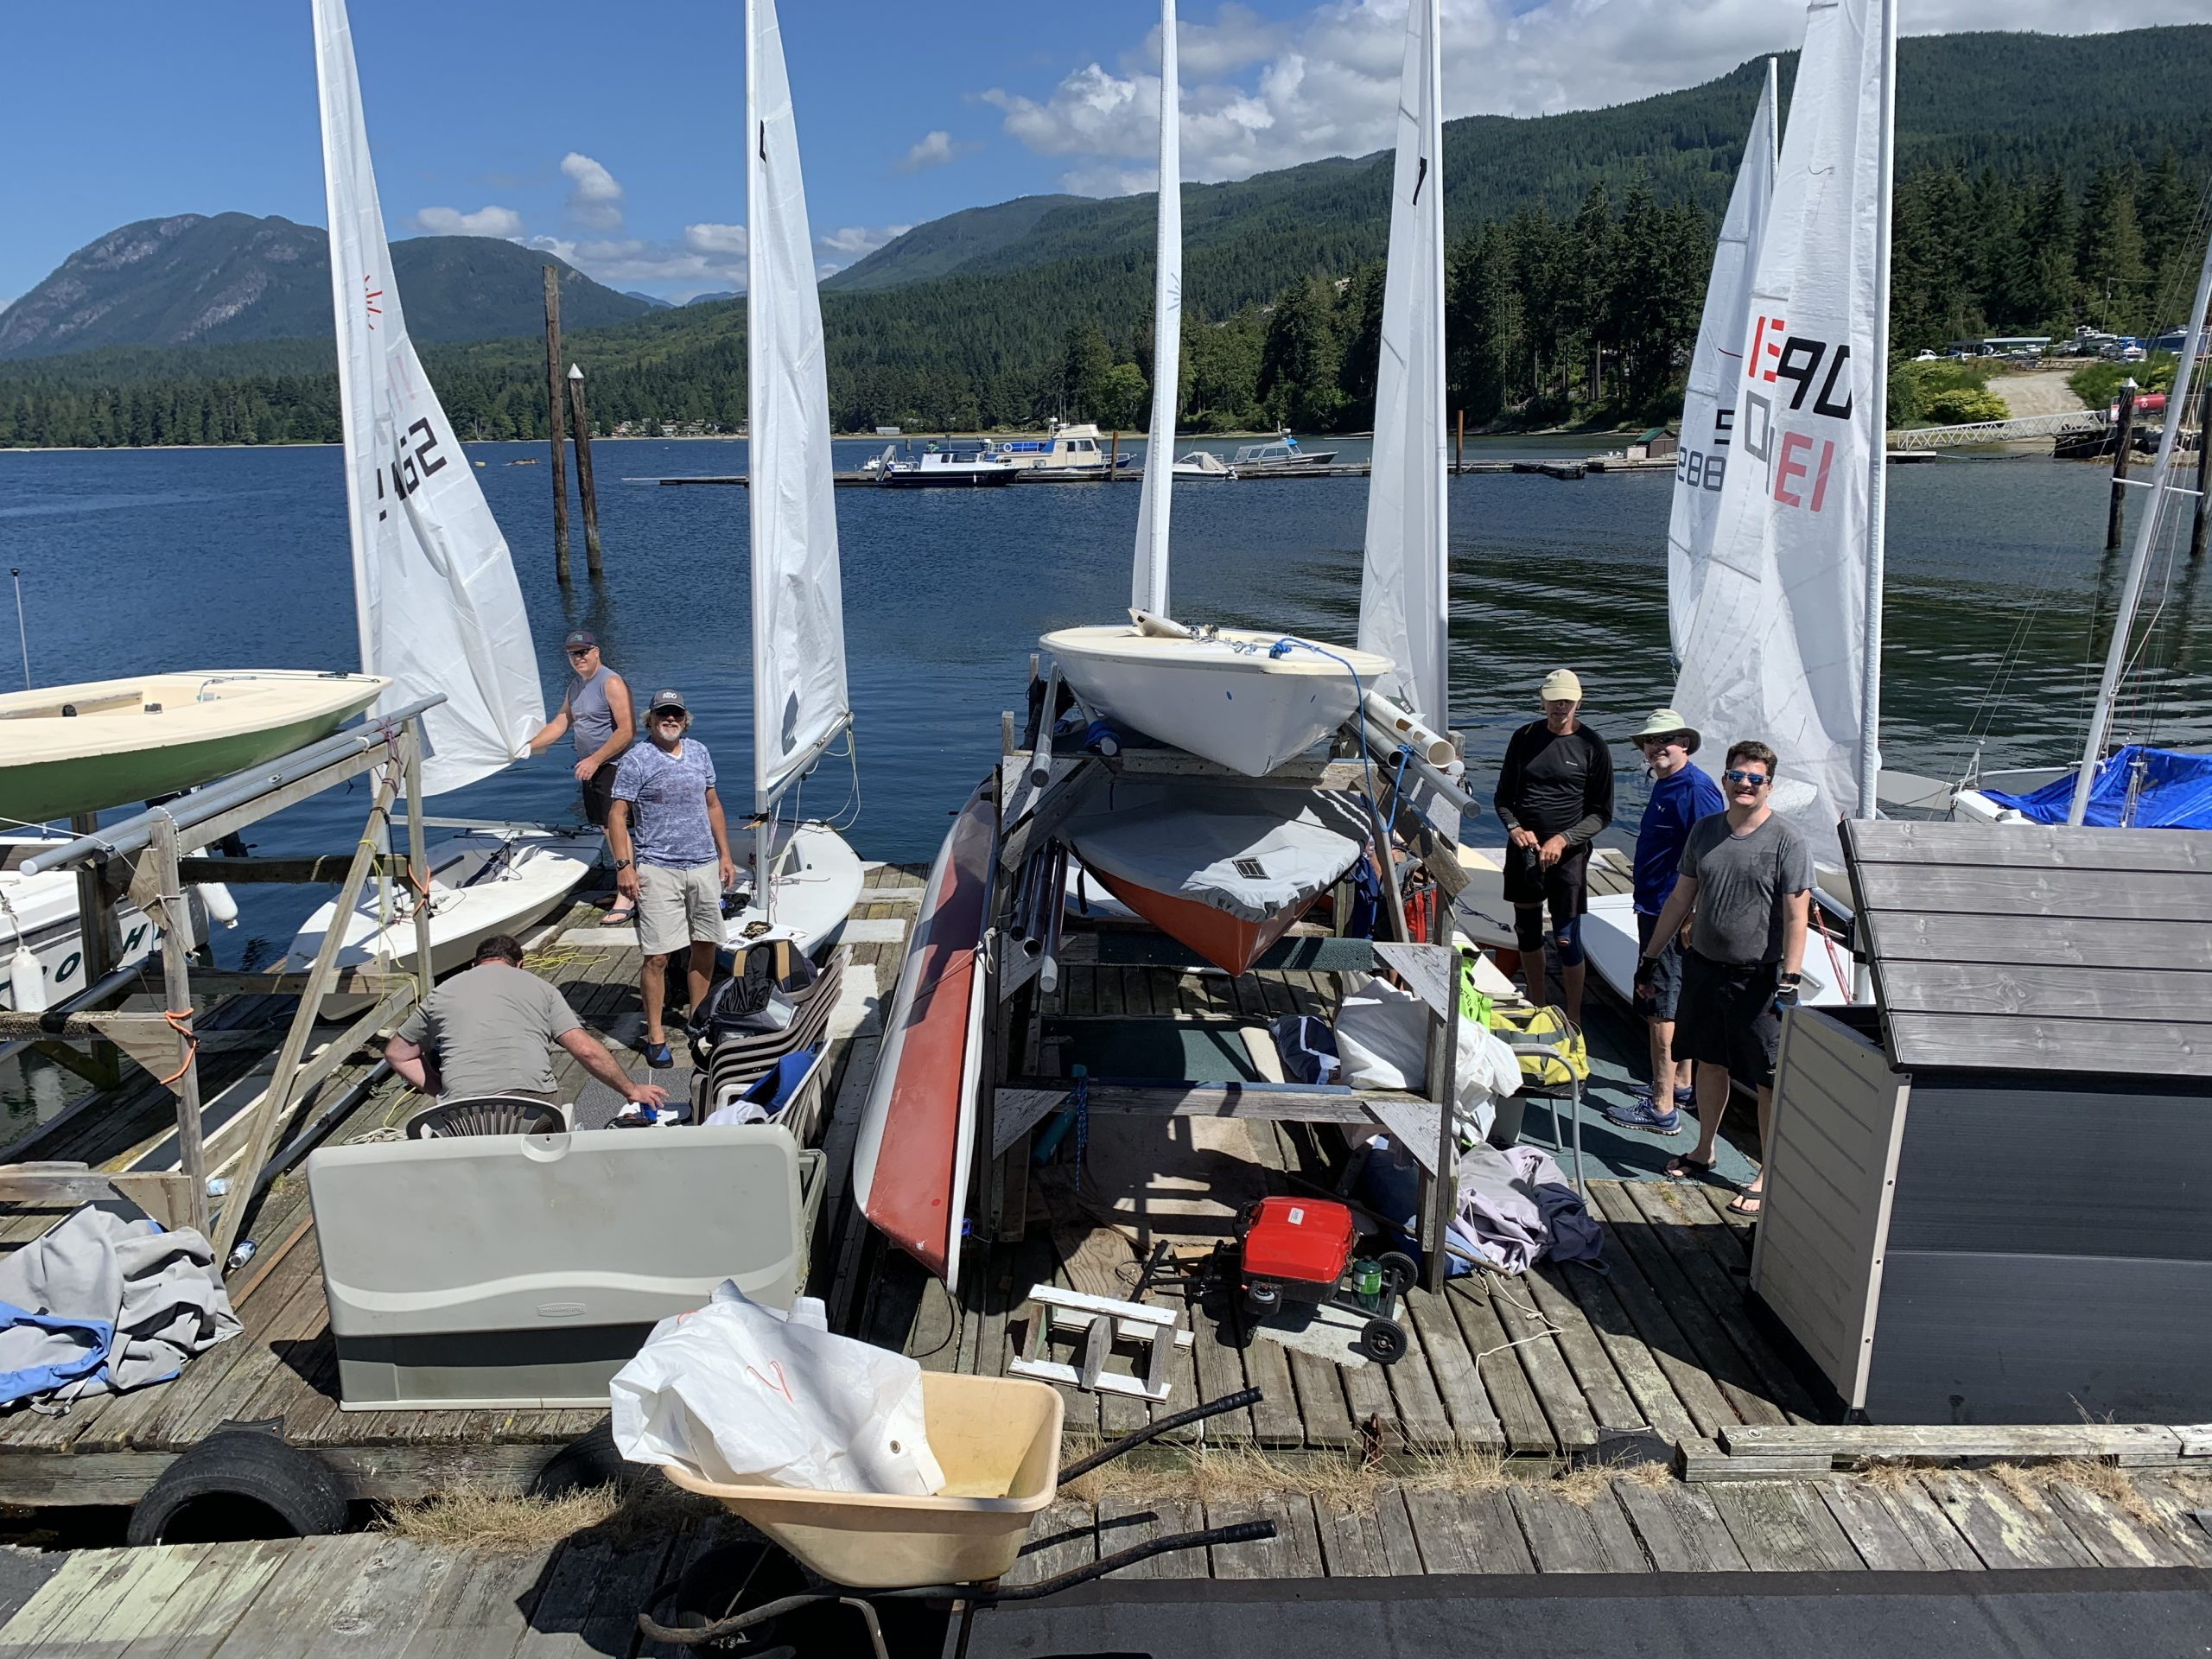 The getting the boats rigged up